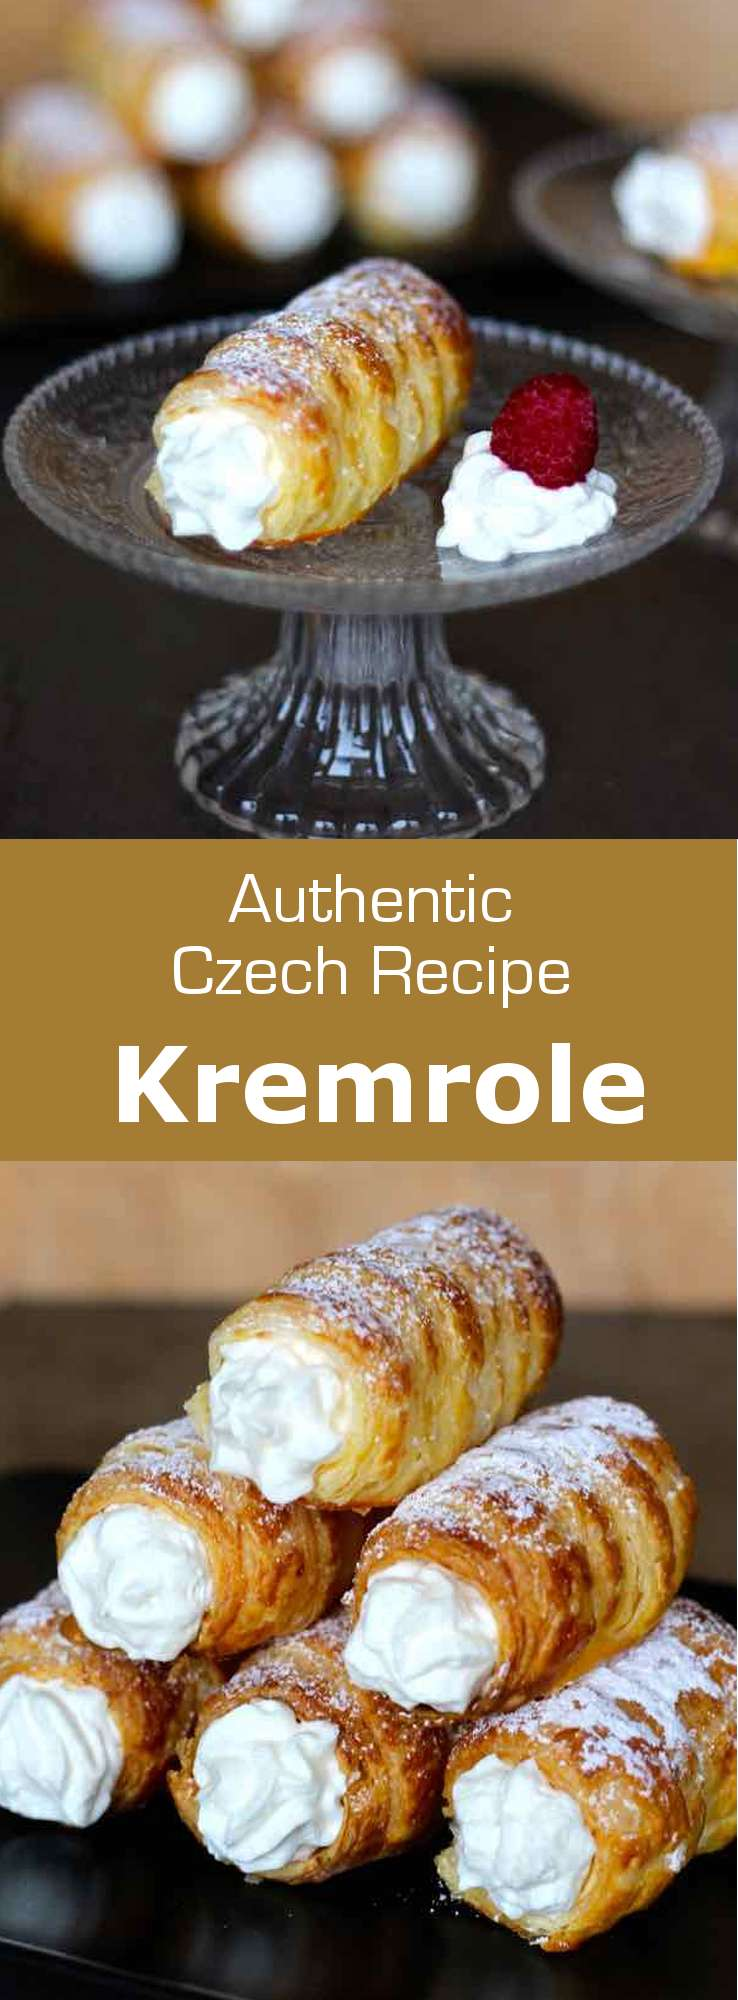 Kremrole is a deliciously crispy roll-shaped puff pastry that is filled with meringue or whipped cream that is popular in the Czech Republic, Austria, Germany and Slovakia. #CzechRepublic #CzechCuisine #CzechRecipe #Dessert #CzechDessert #Pastry #CzechPastry #Vegetarian #VegetarianPastry #WorldCuisine #196flavors